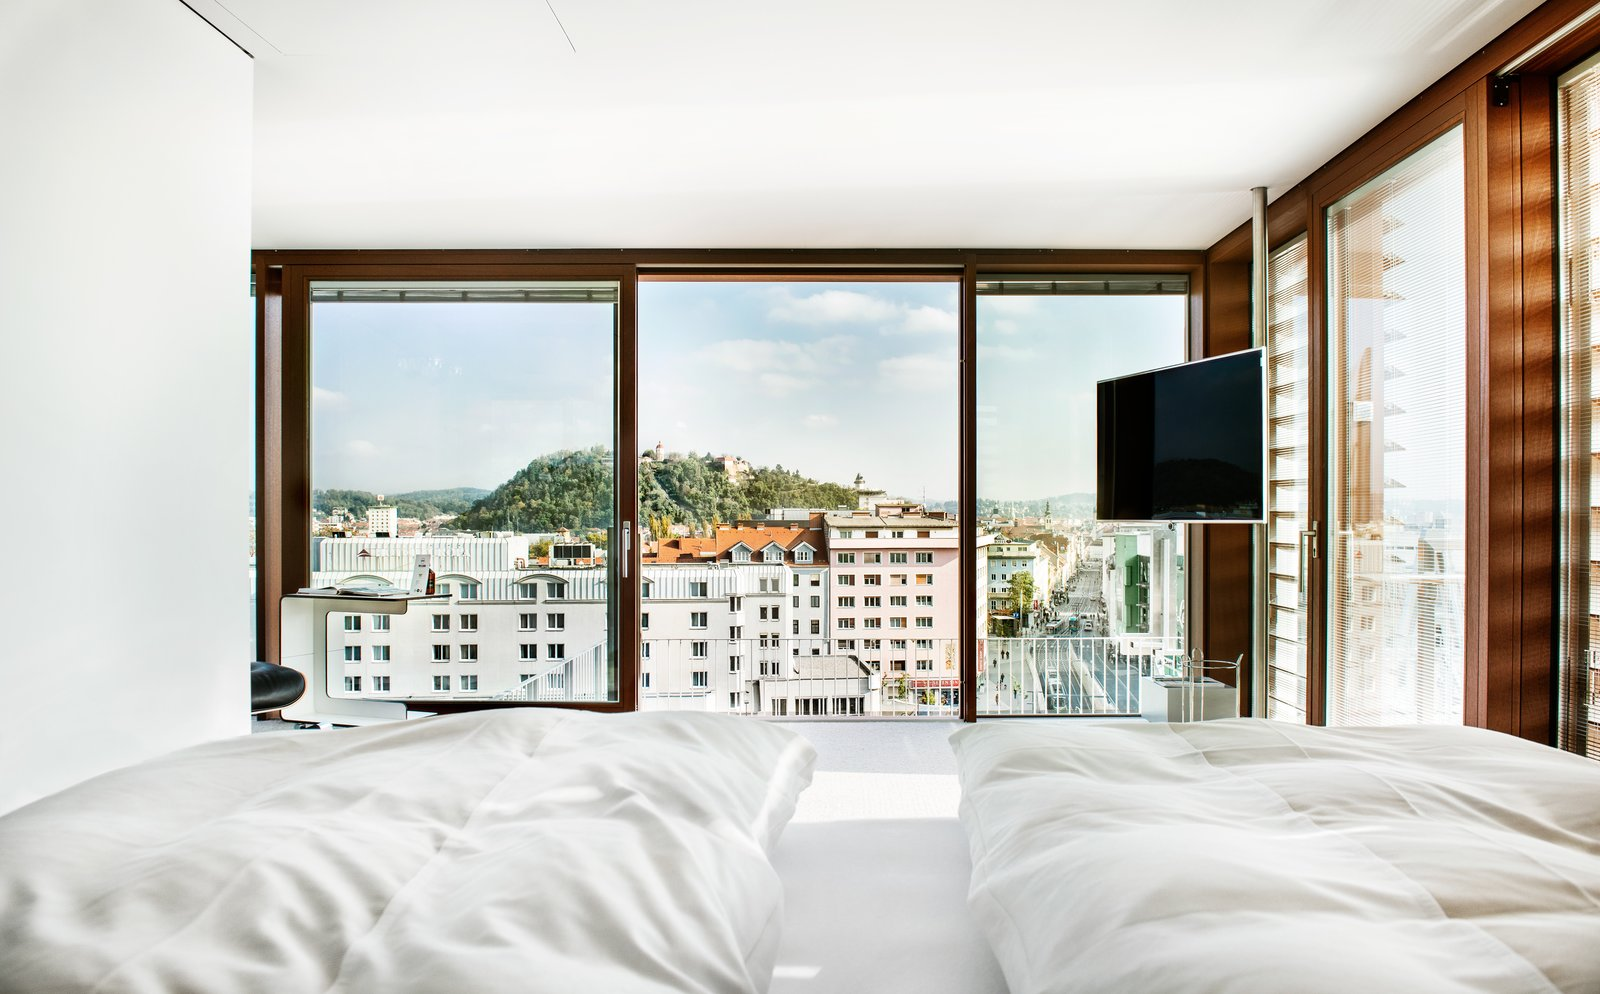 Windows  Photo 4 of 8 in Stay in a Prefab Cube Placed Atop a Midcentury Hotel in Austria